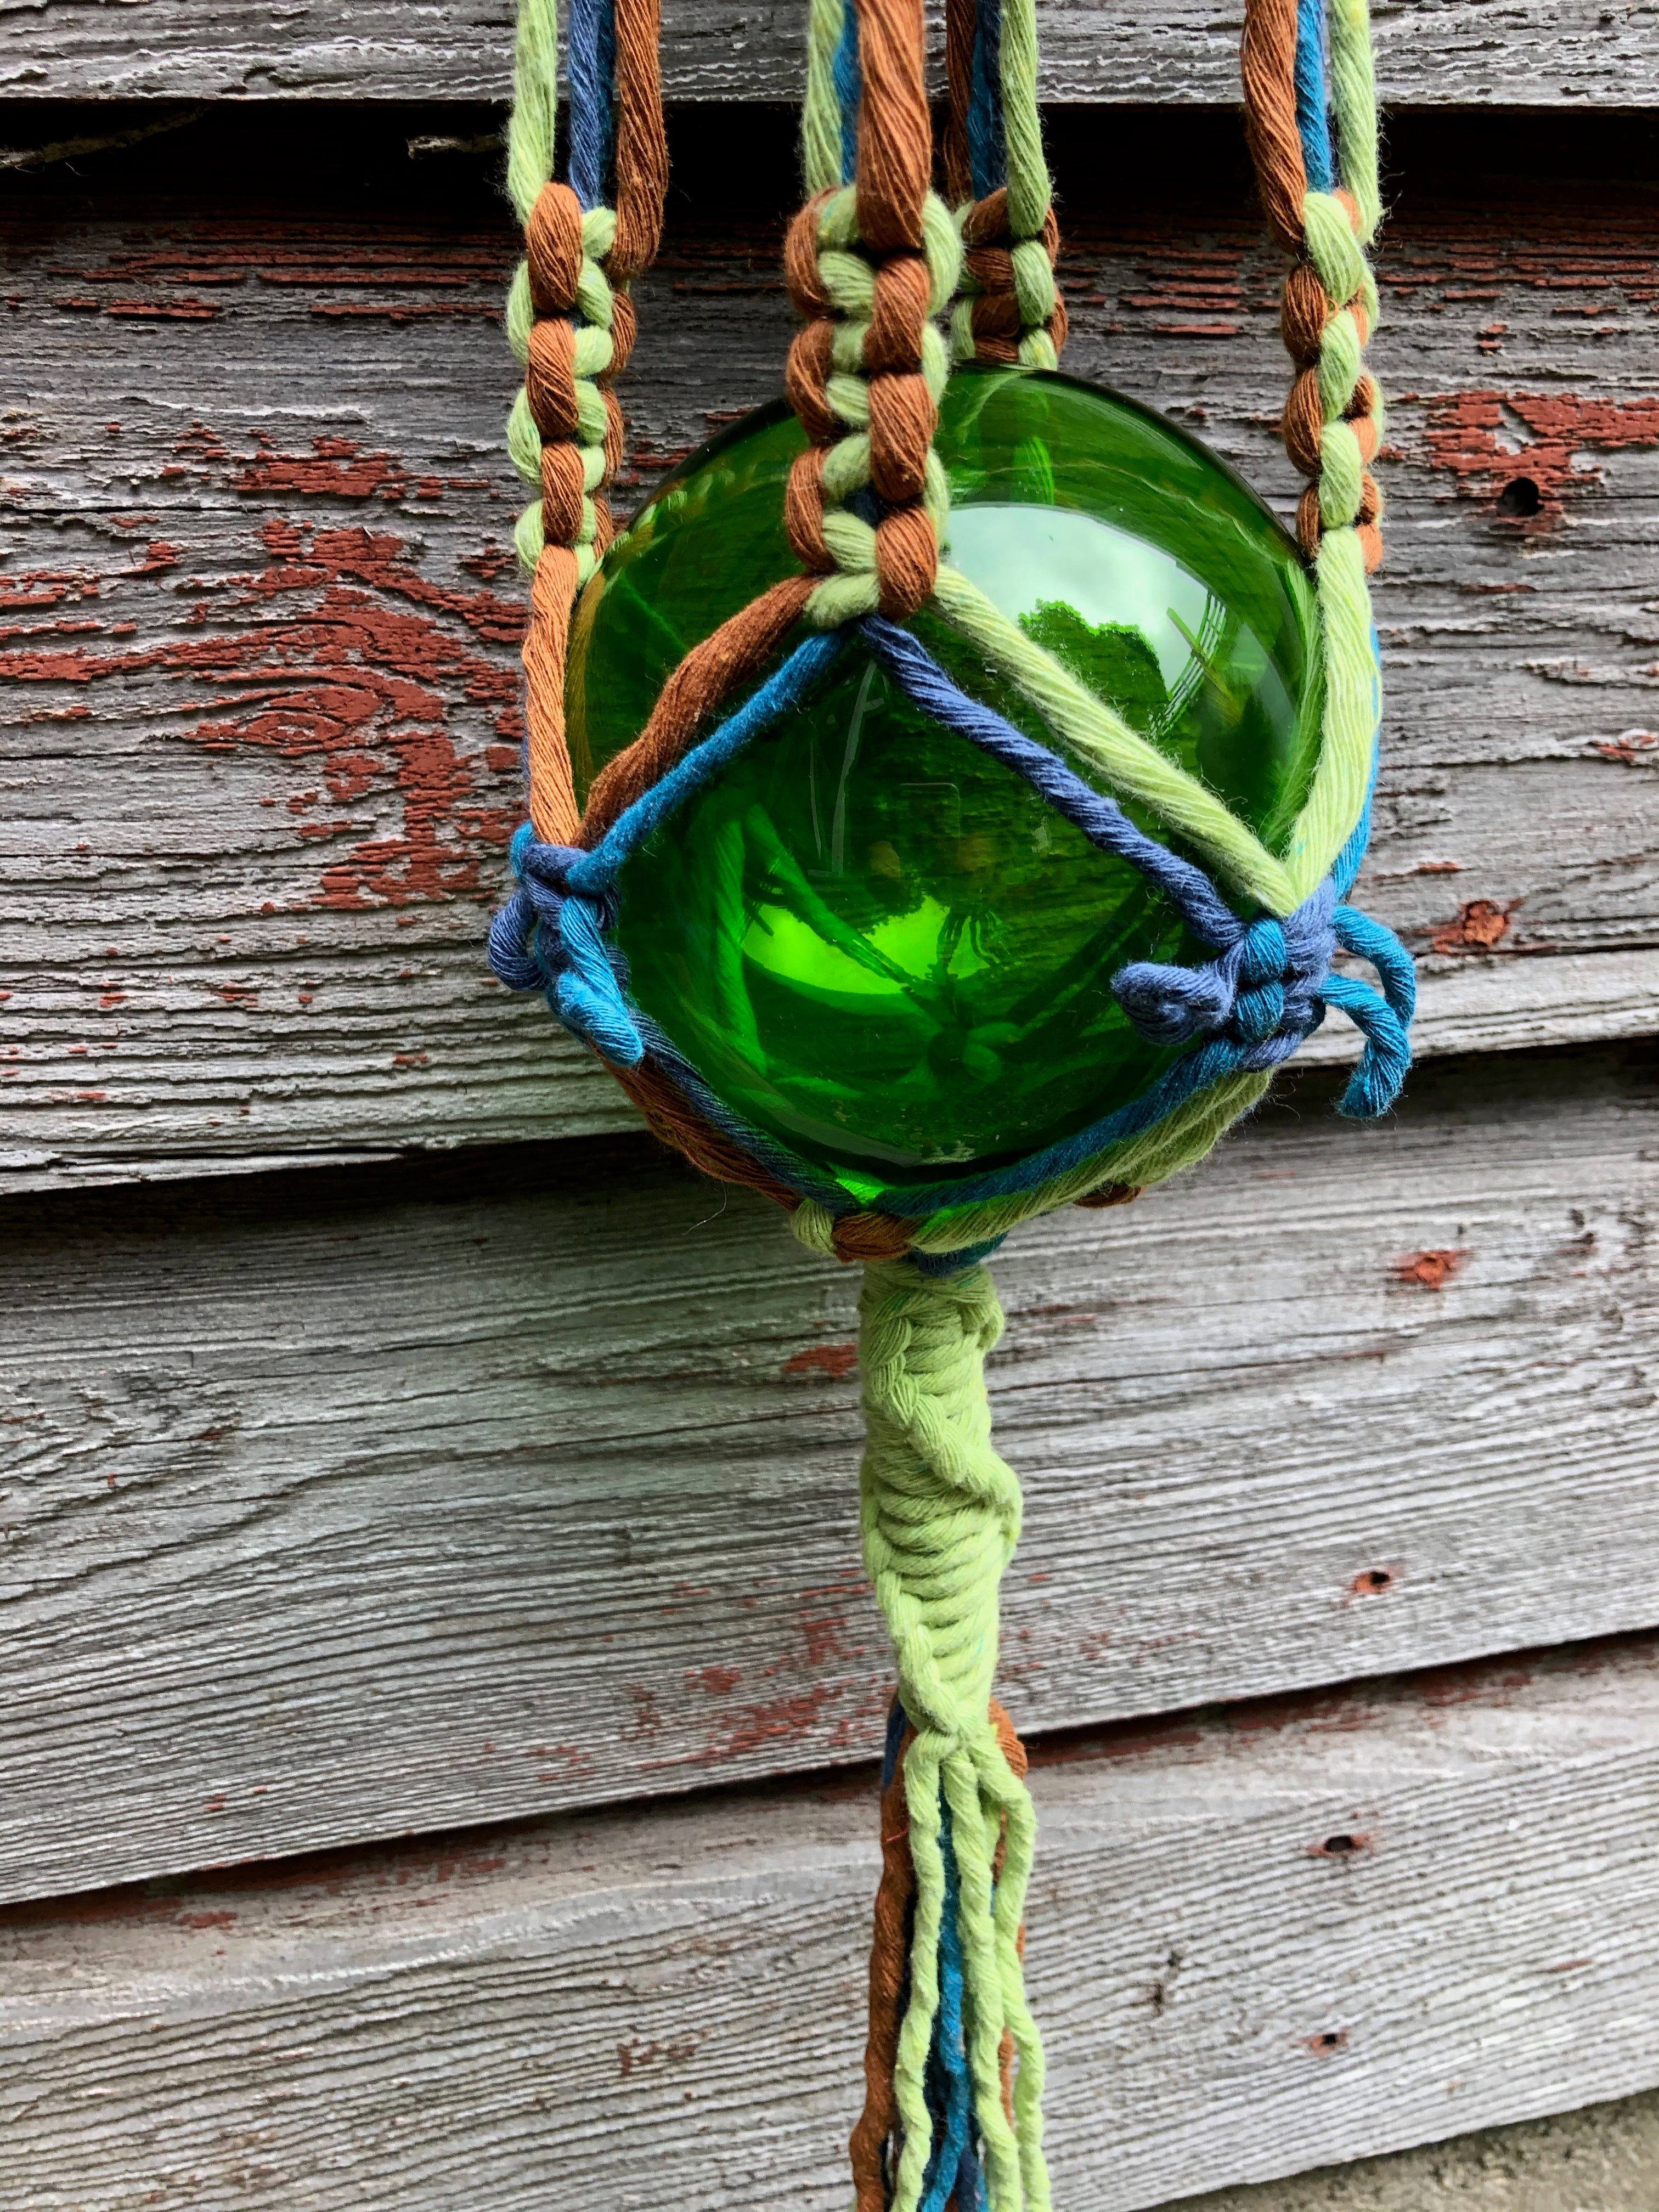 Butterfly Knot Macrame Plant Hanger Made With Super Soft Cotton String and Big Chunky Blue Beads